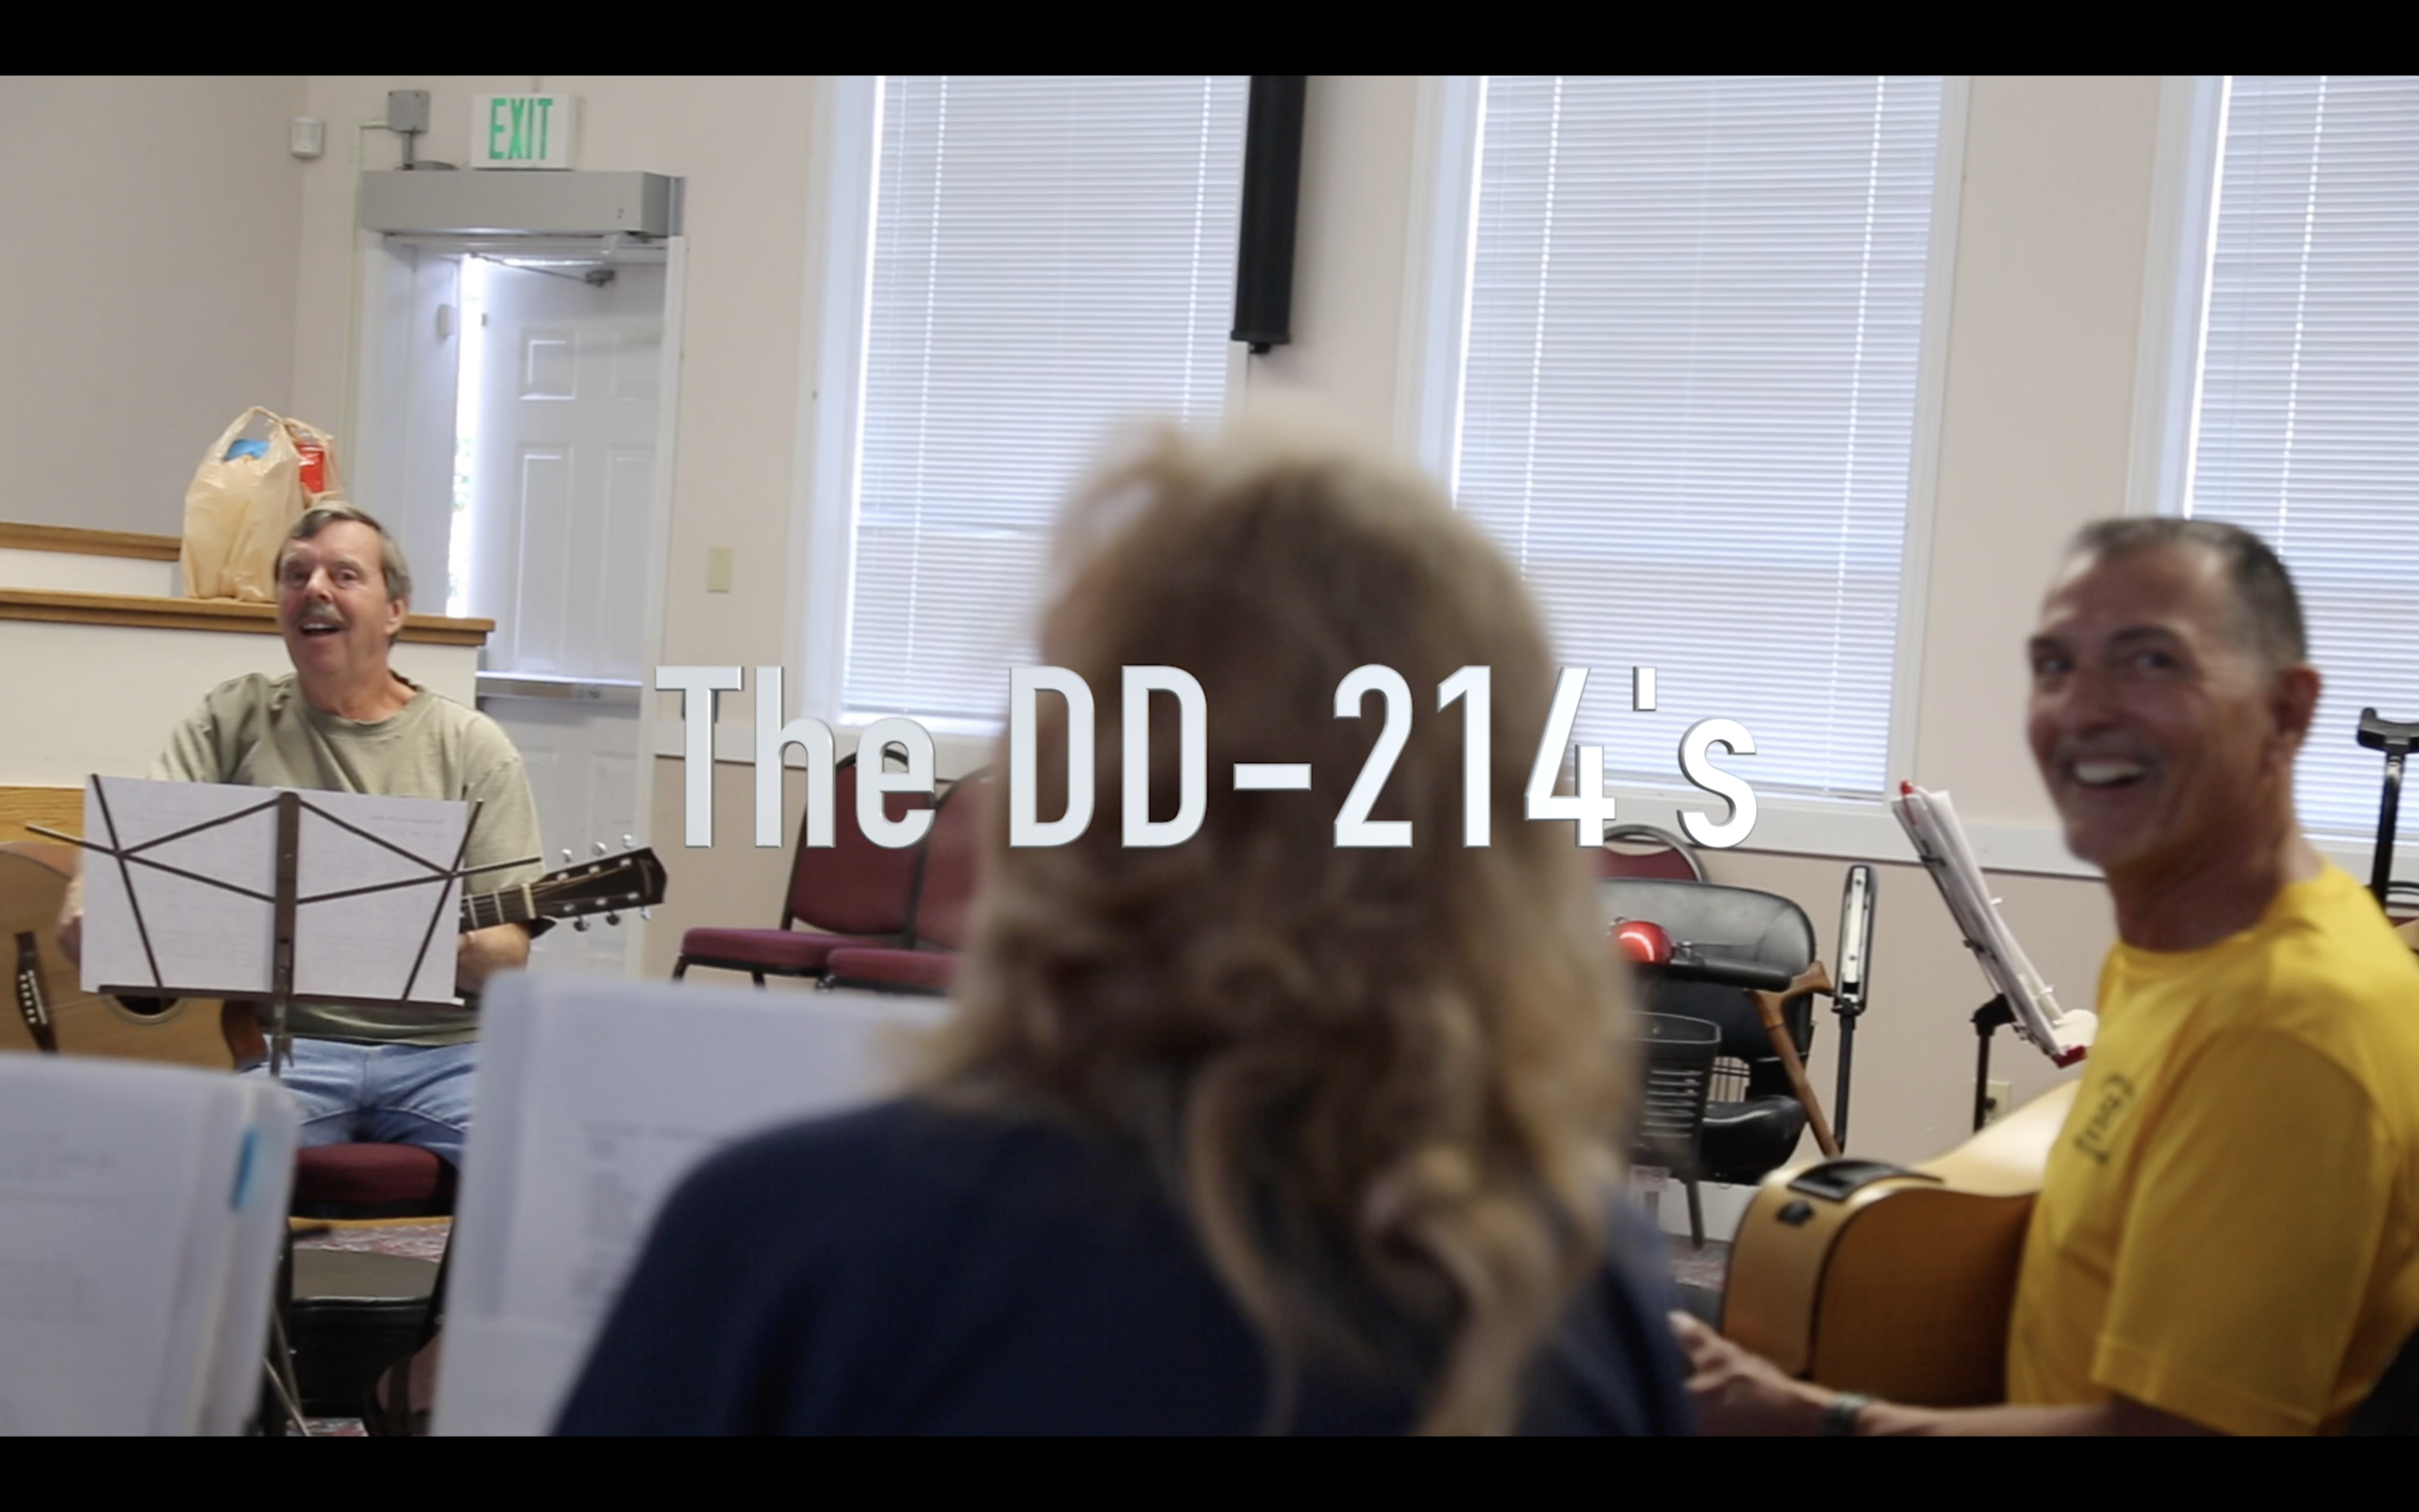 The DD-214's - Click this image to see how we got started.